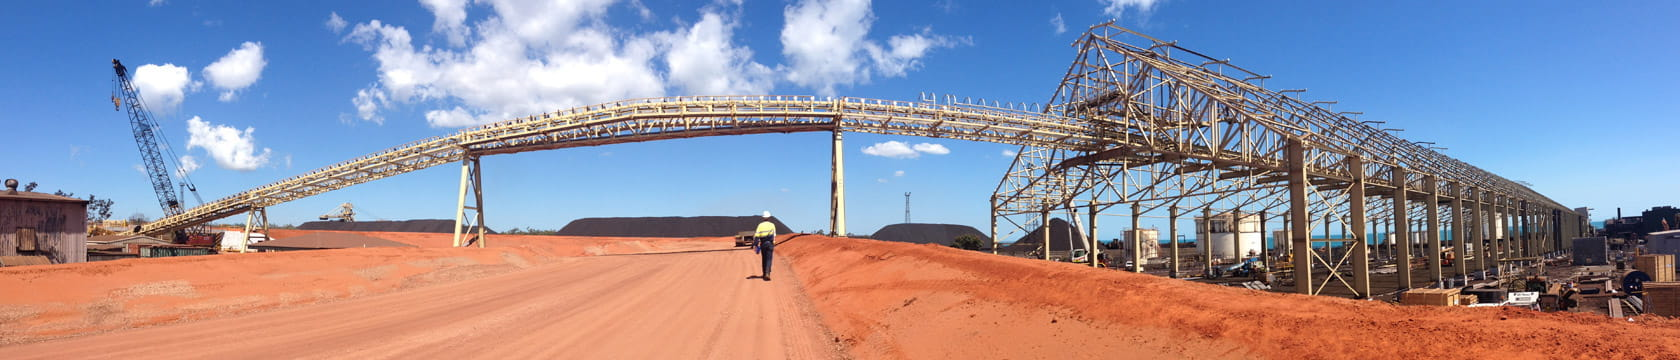 manganese processing infrastructure